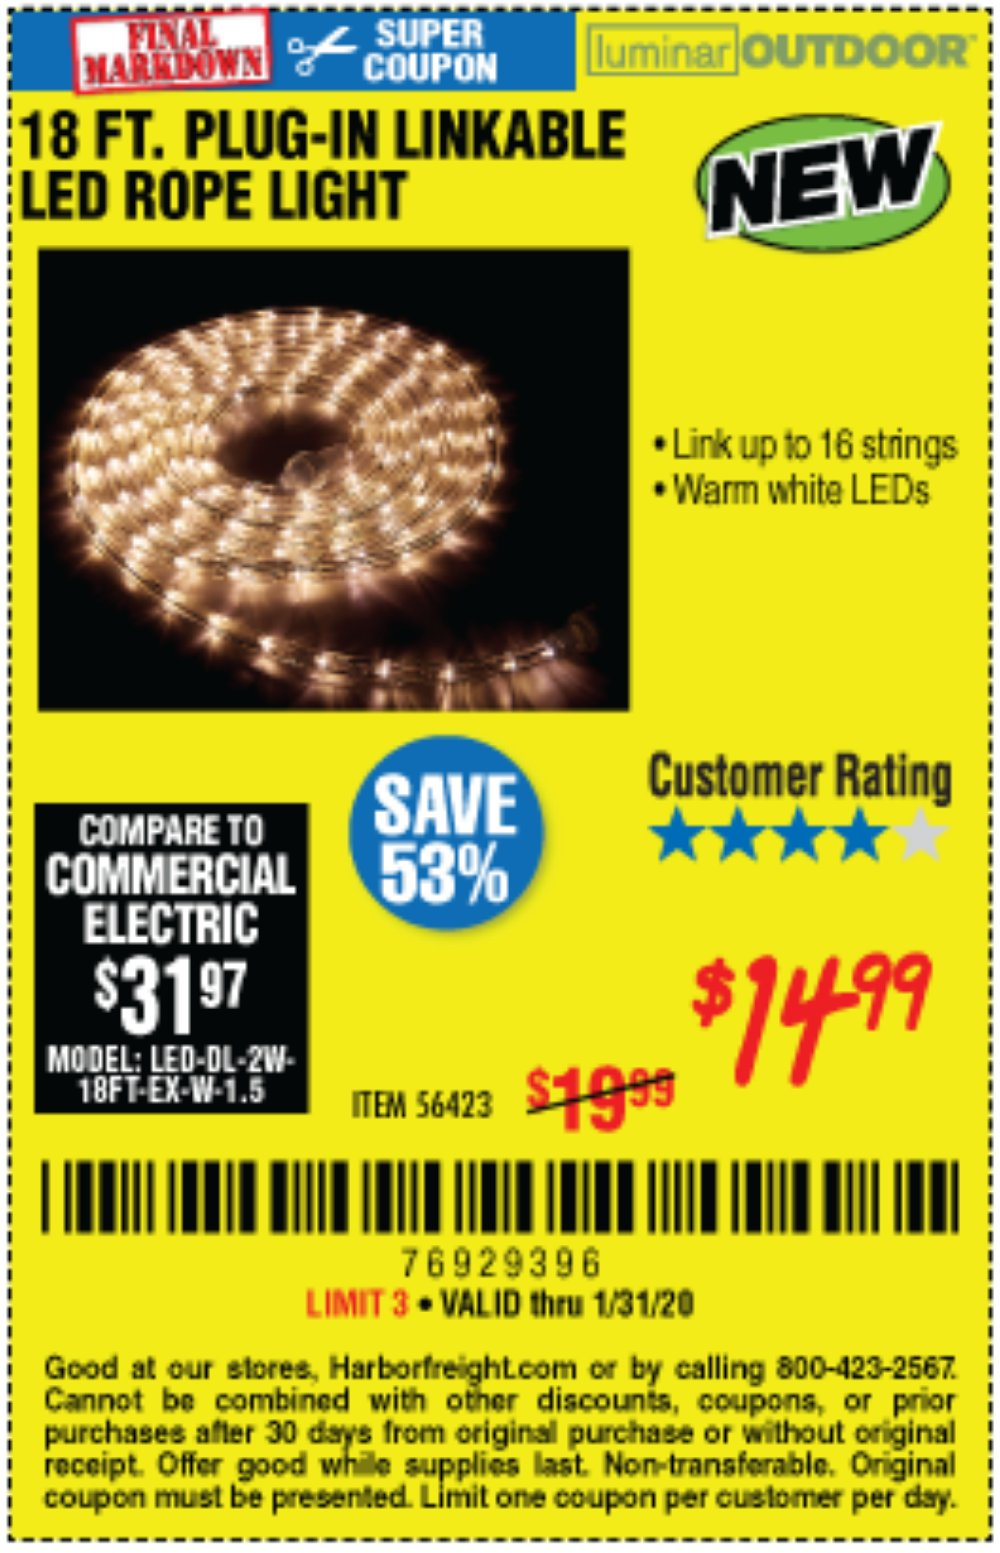 Harbor Freight Coupon, HF Coupons - Luminar Outdoor 18 Ft. Plug In Rope Light